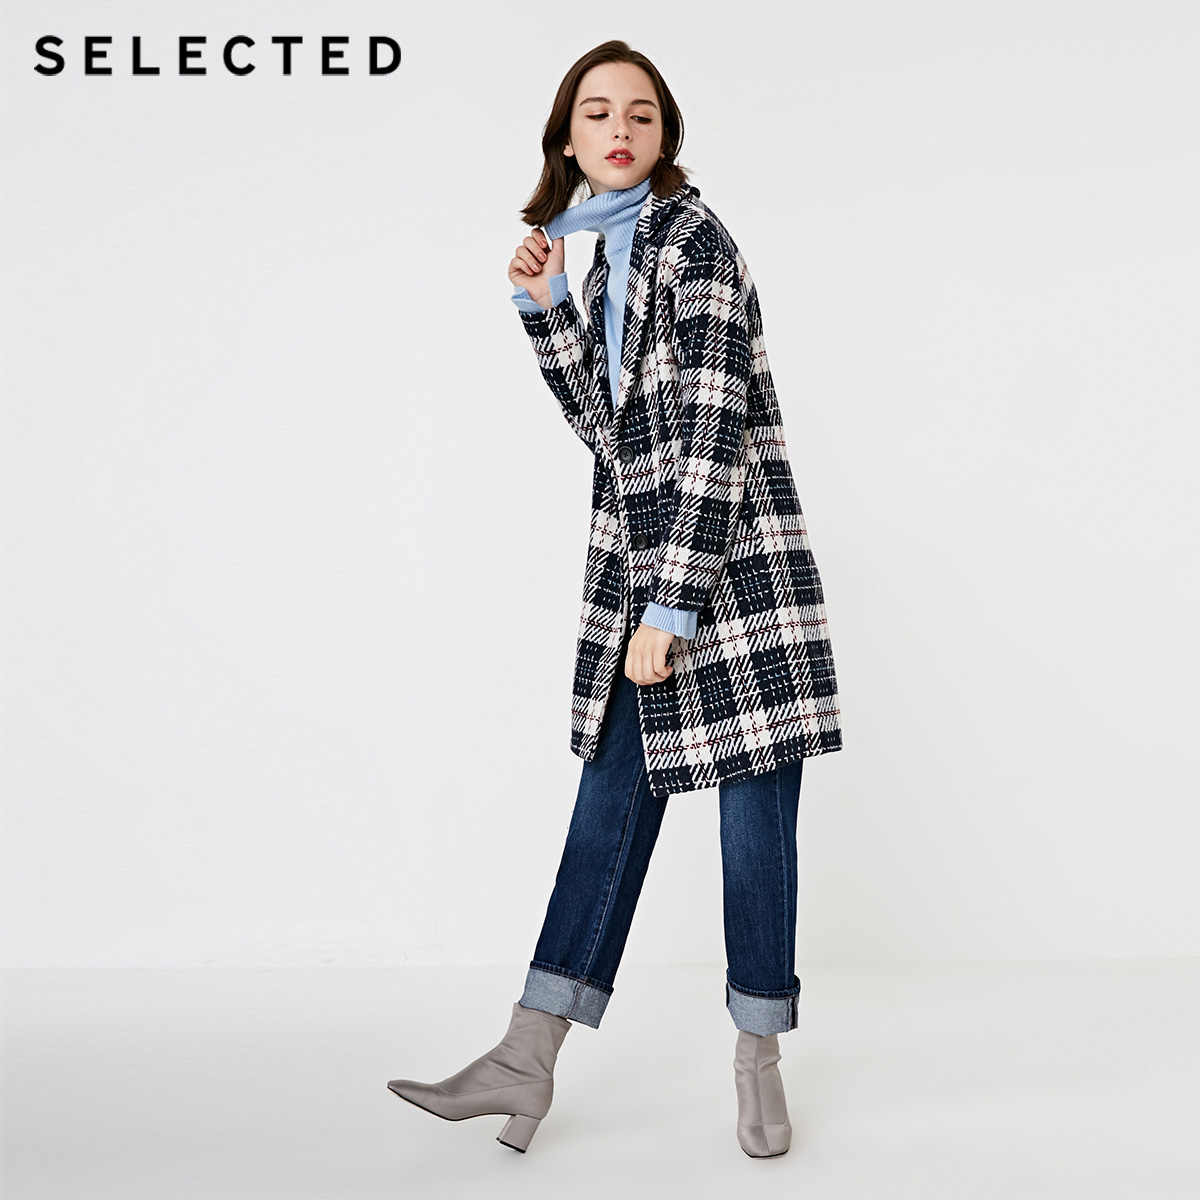 SELECTED Autumn and winter new women's with wool contrast plaid woolen coat S |418427512